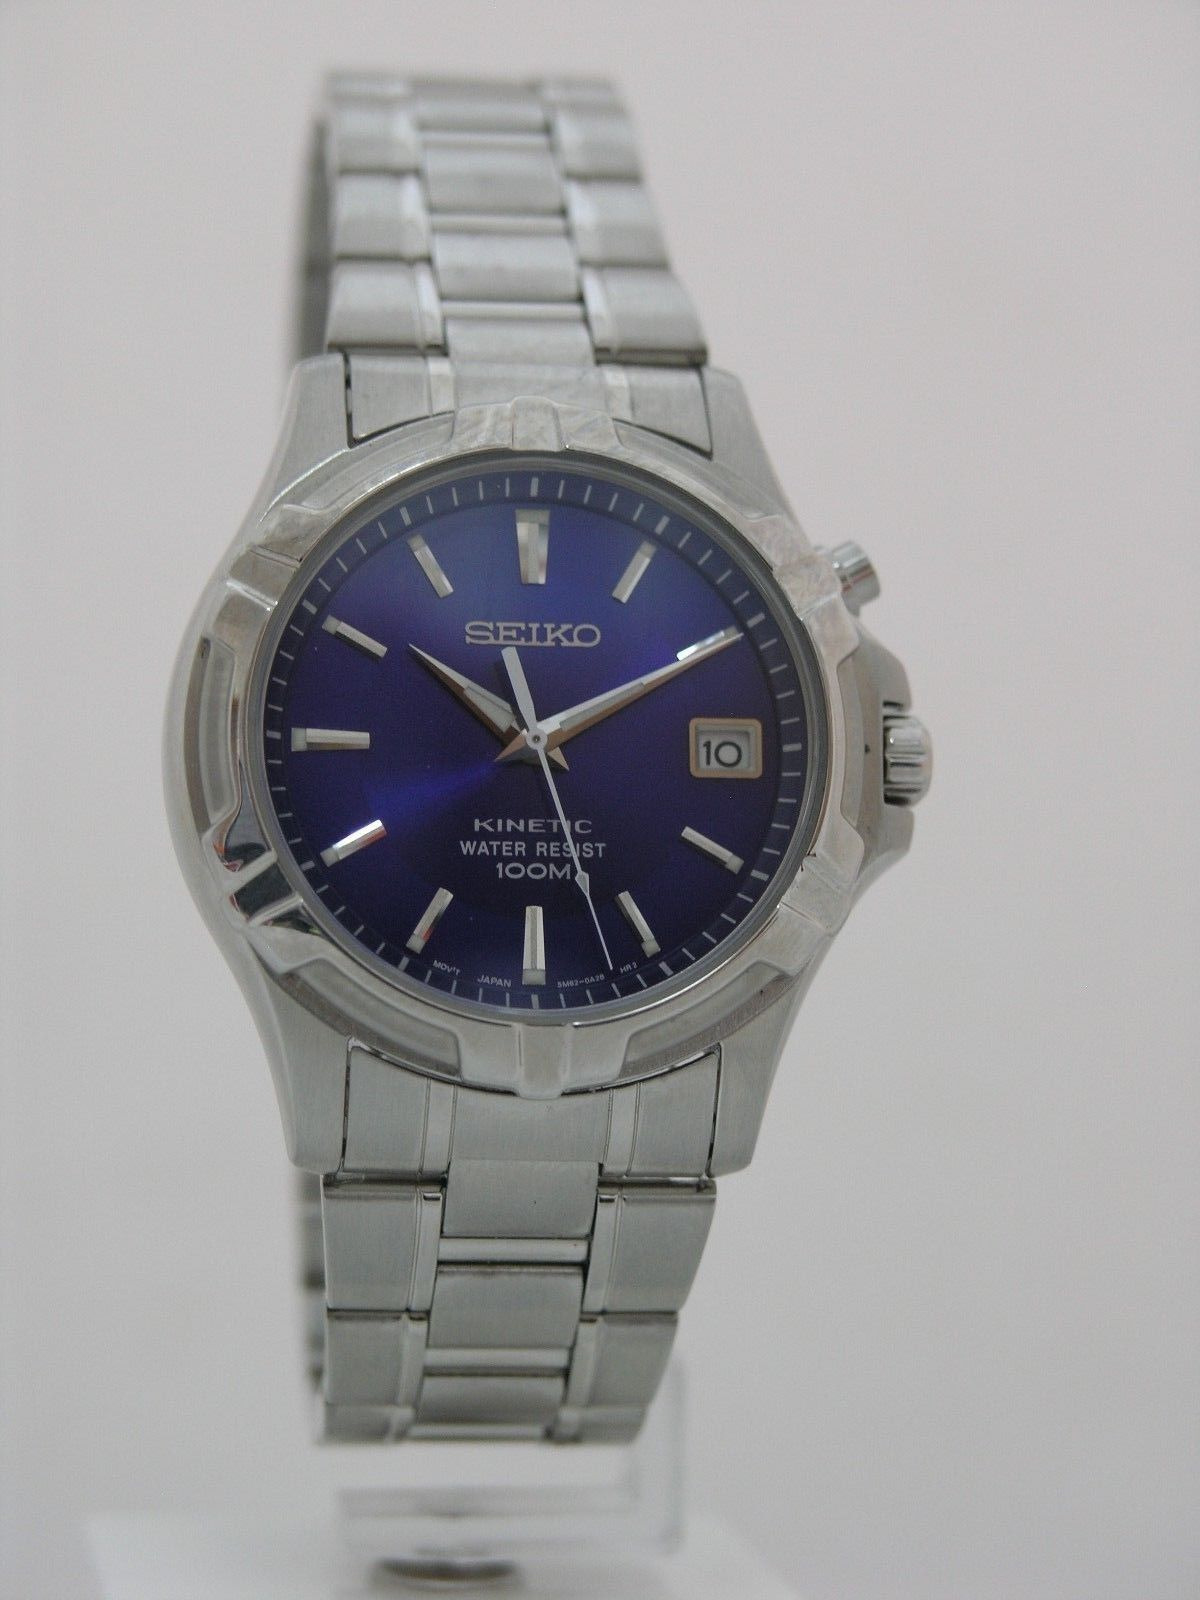 Seiko watch mens watches stainless steel kinetic blue dial movement 5M62 SKA003